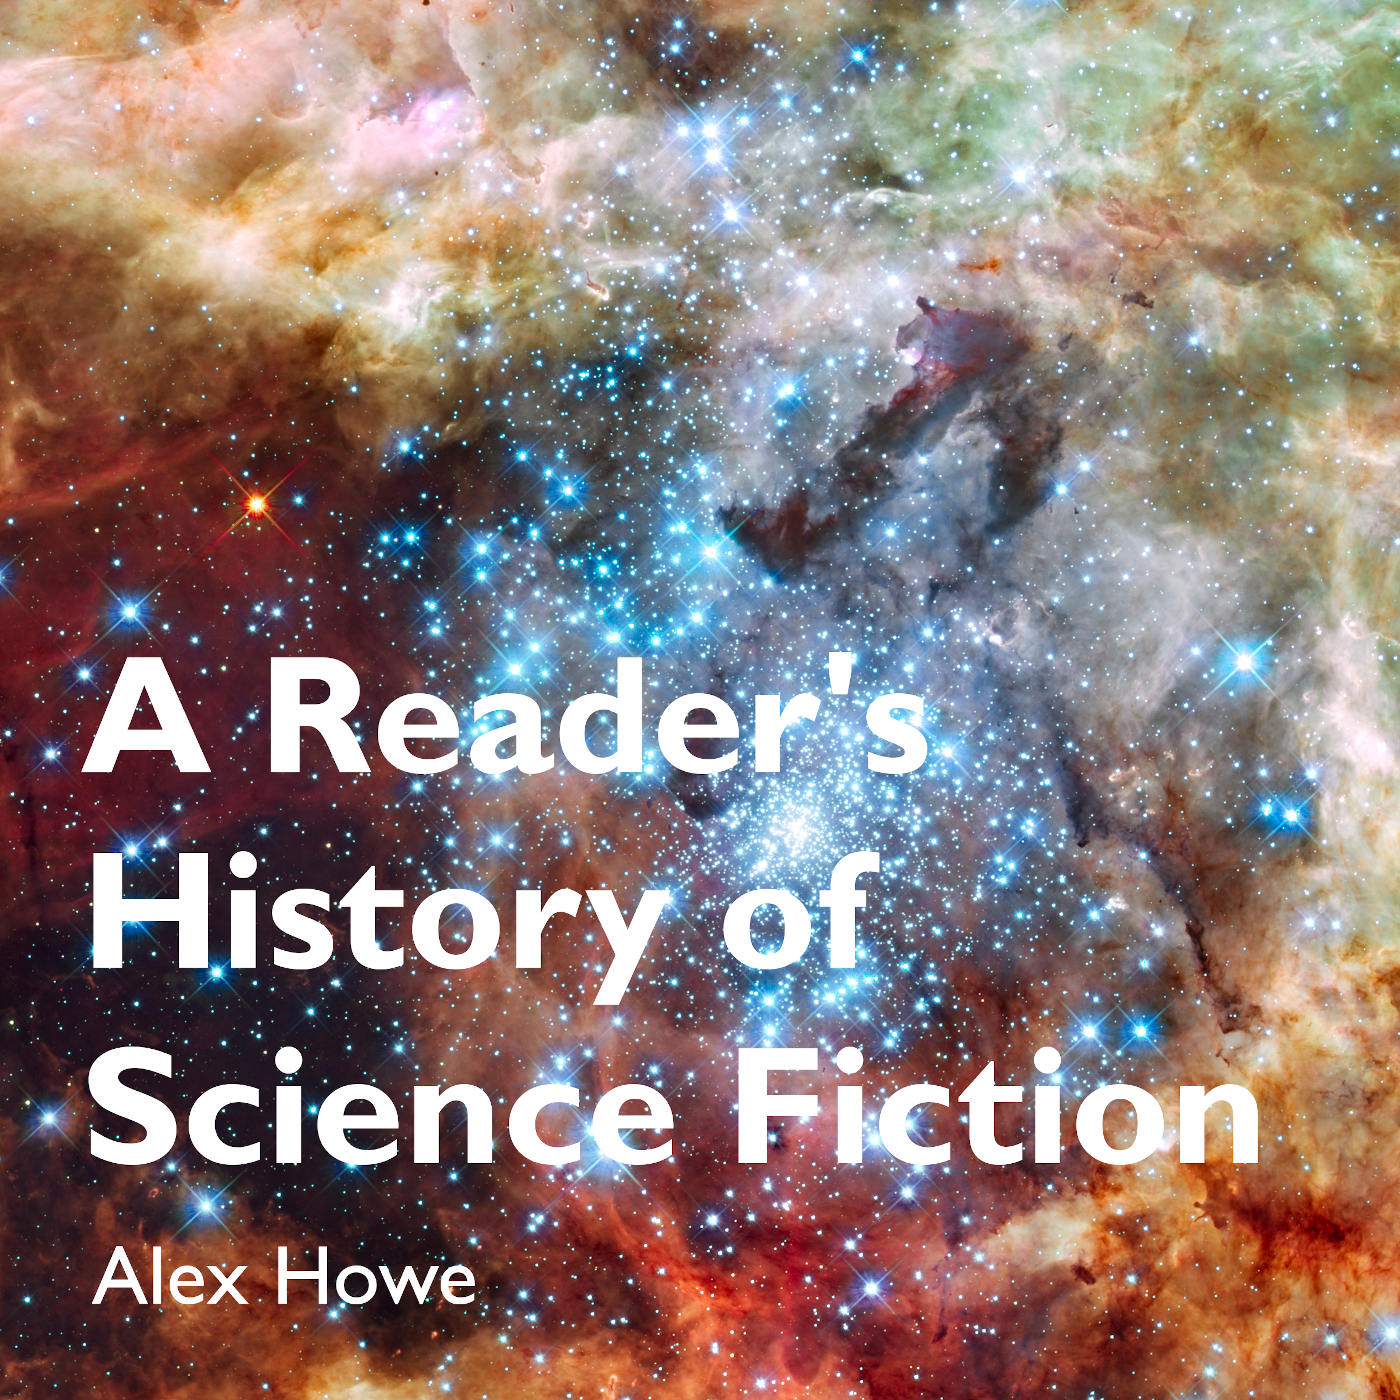 A Reader's History of Science Fiction show art